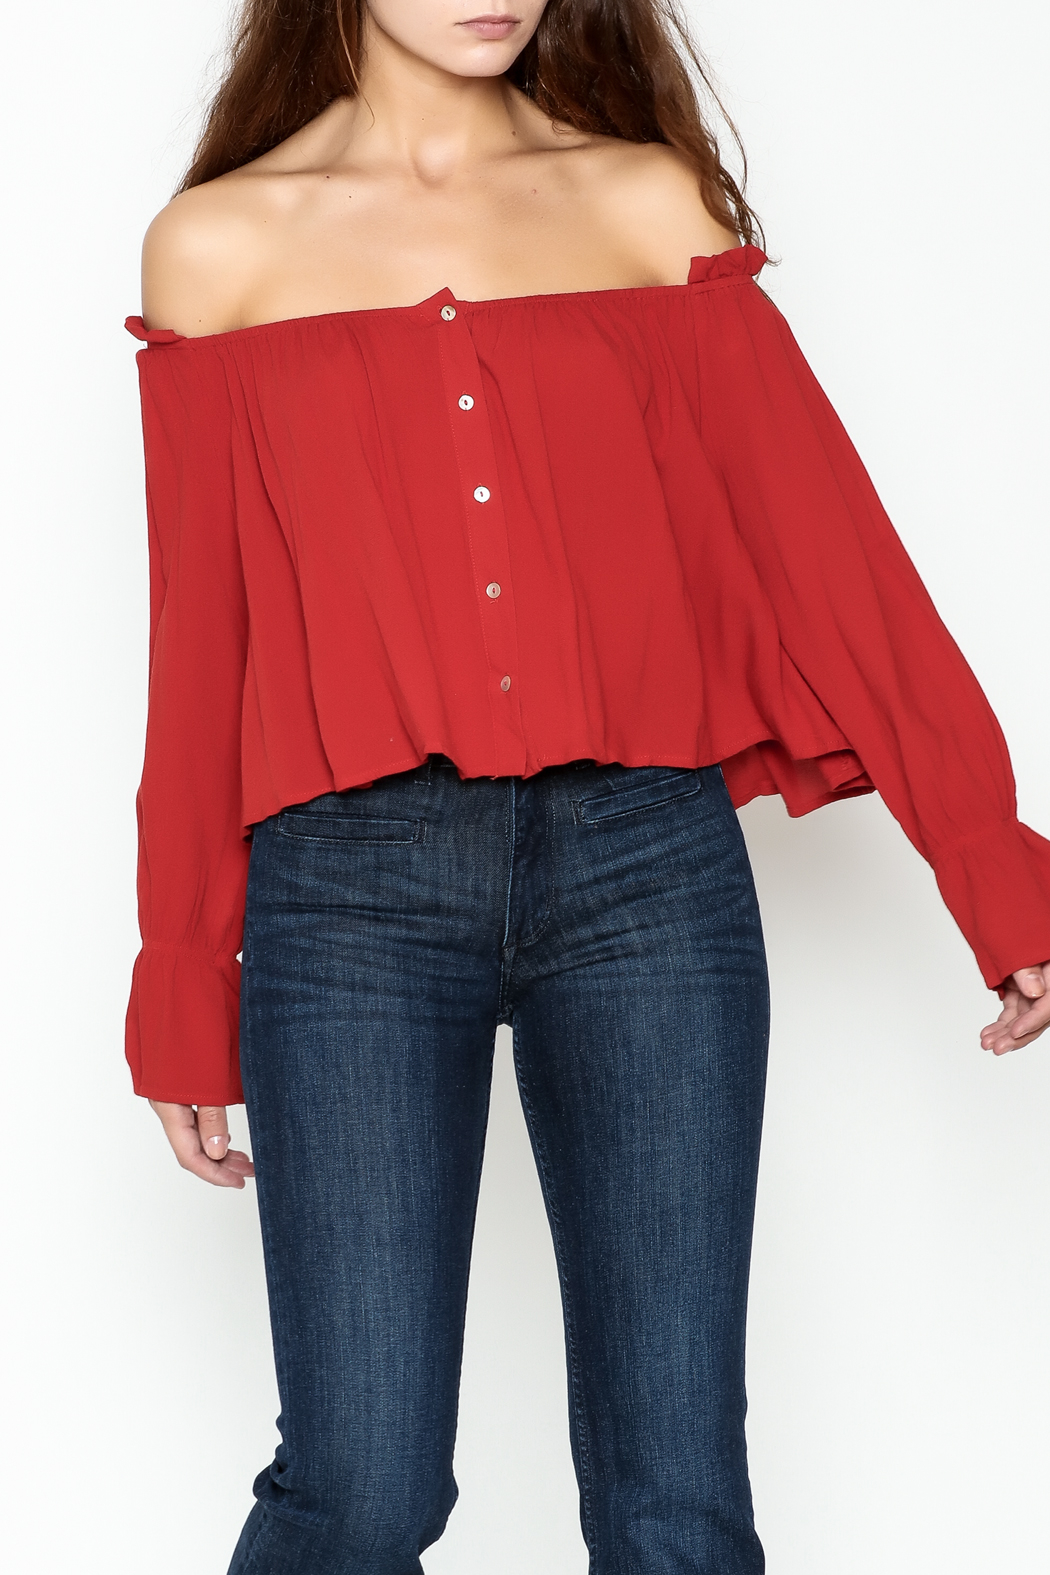 lunik Off Shoulder Buttoned Top - Main Image